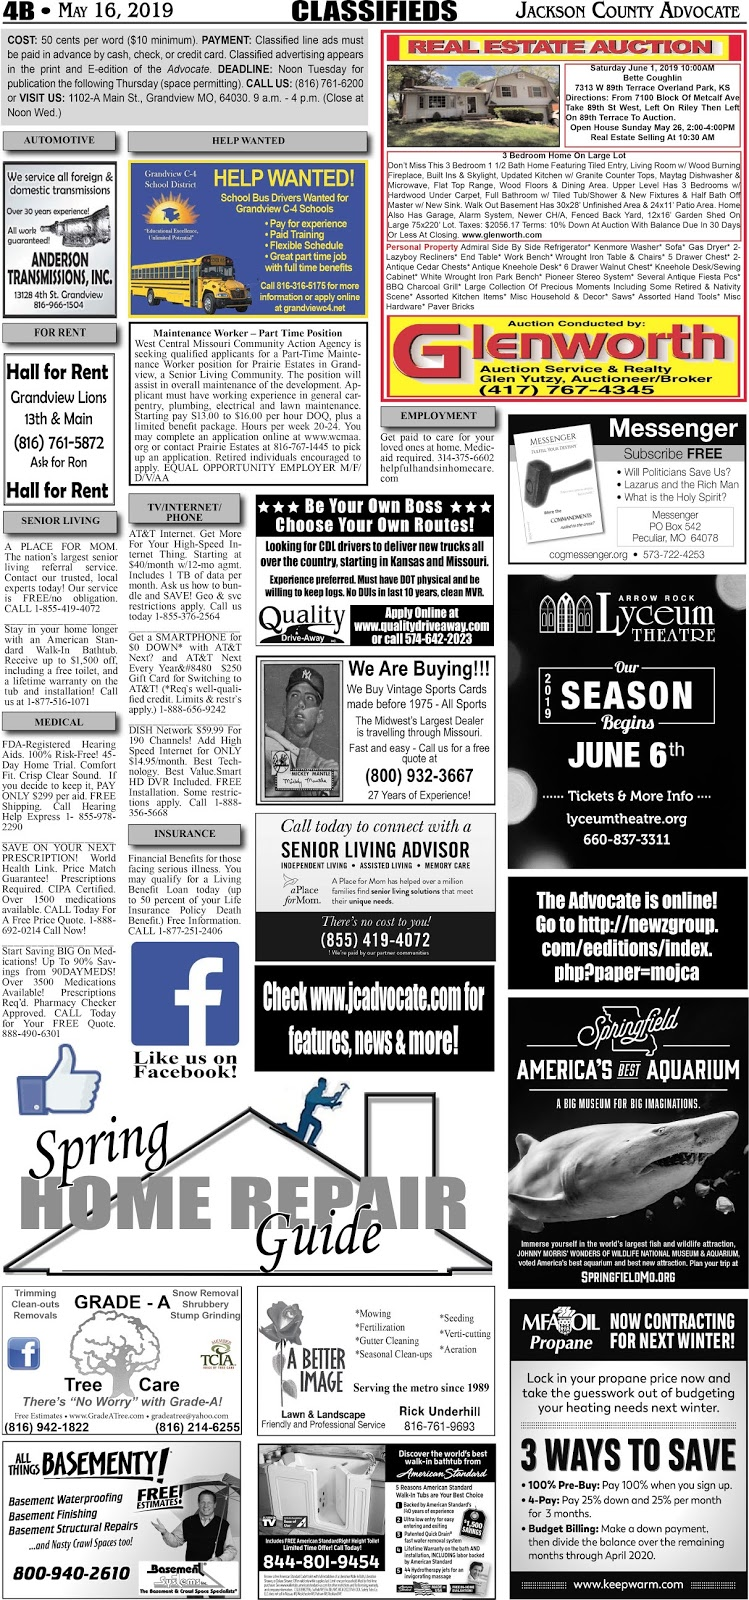 Jackson County Advocate Newspaper - Covering Grandview